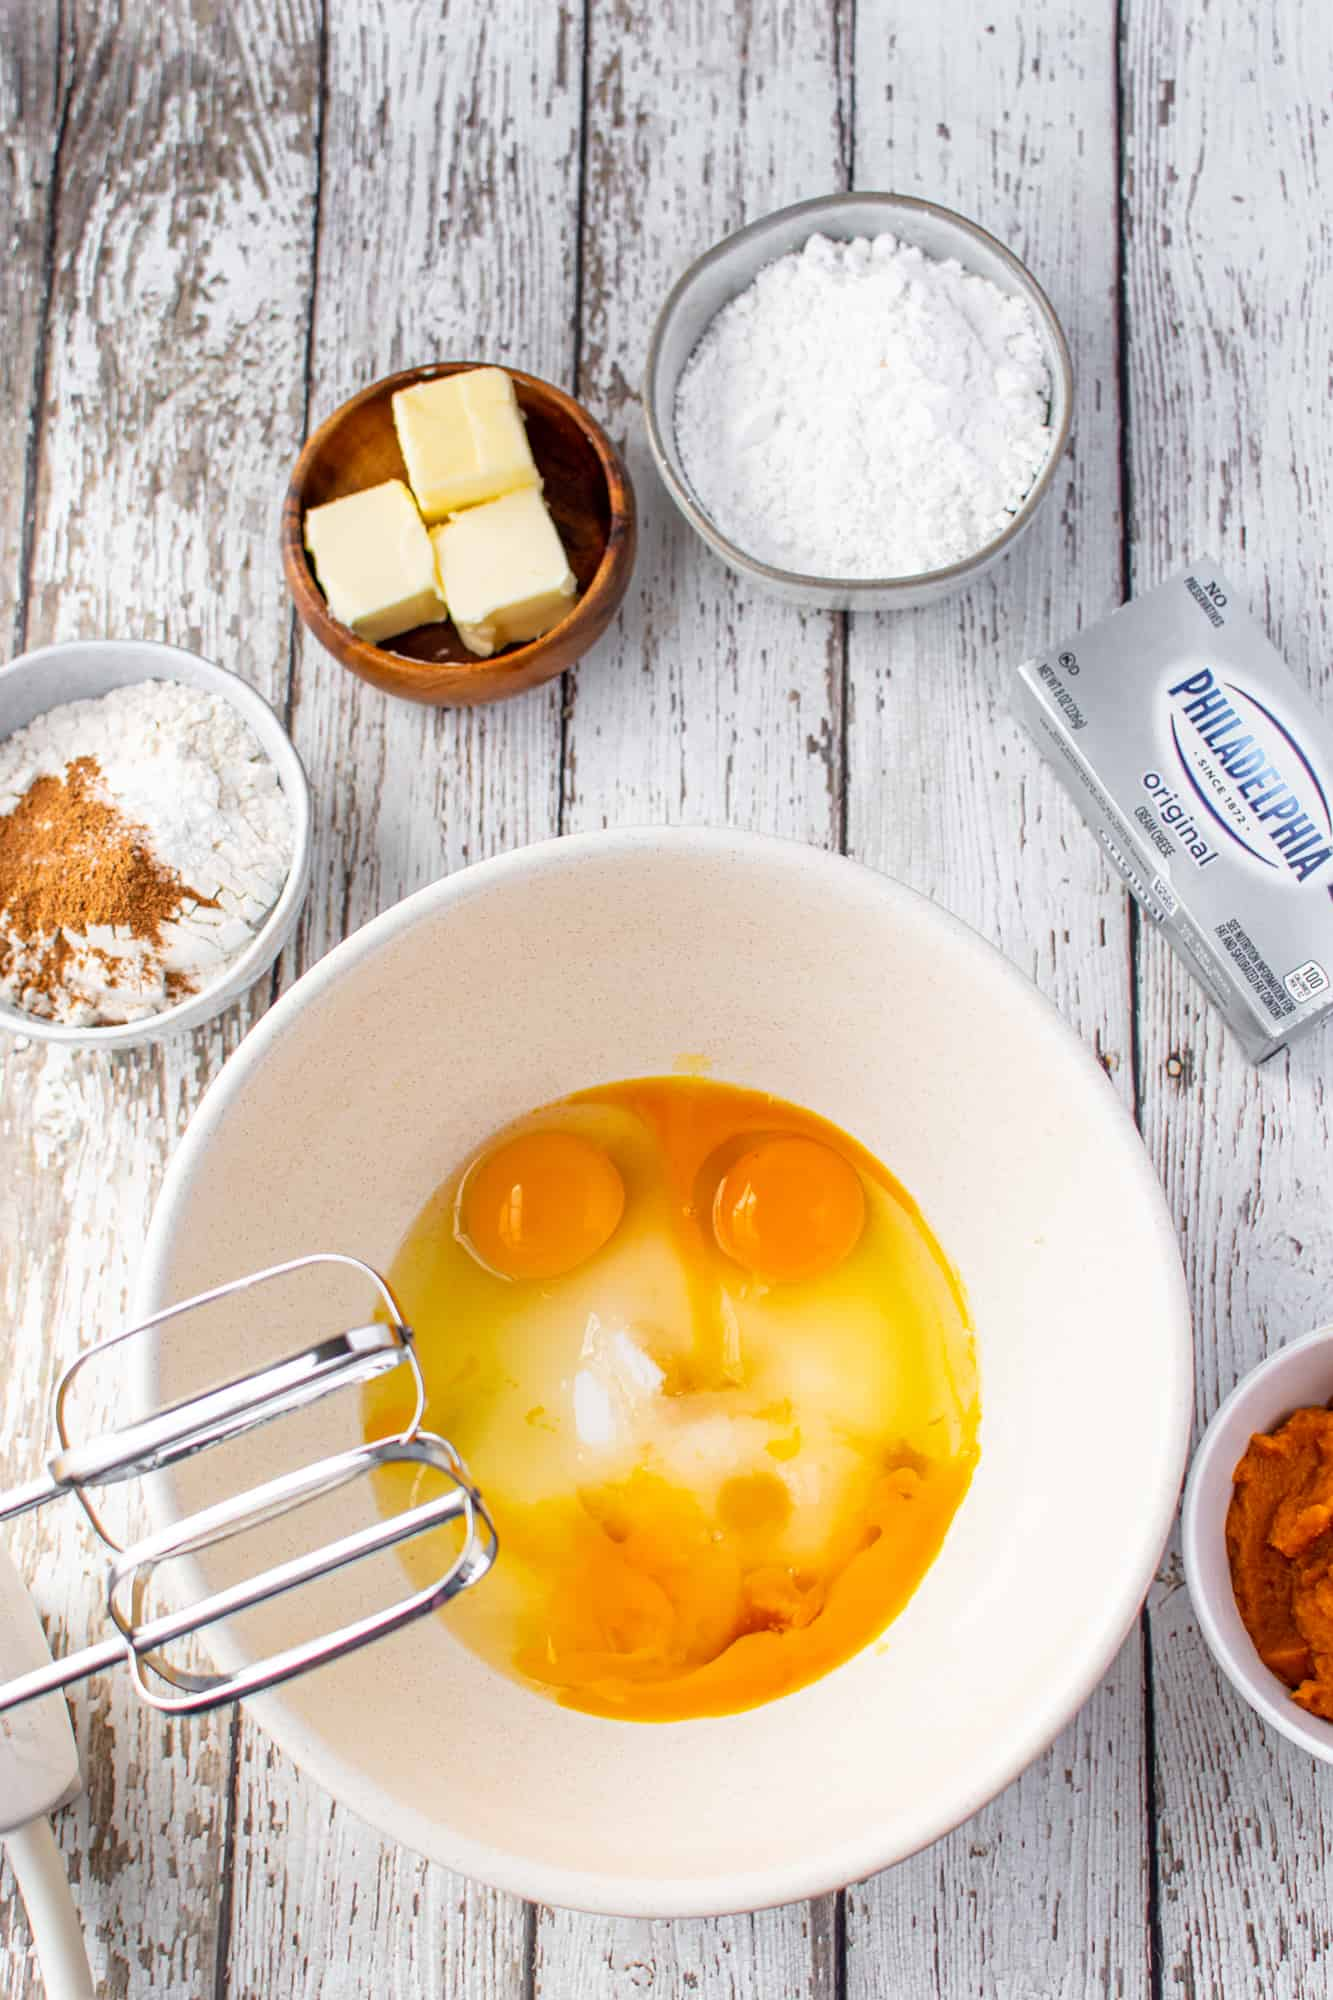 sugar and eggs in a white bowl with an electric mixer on the side.